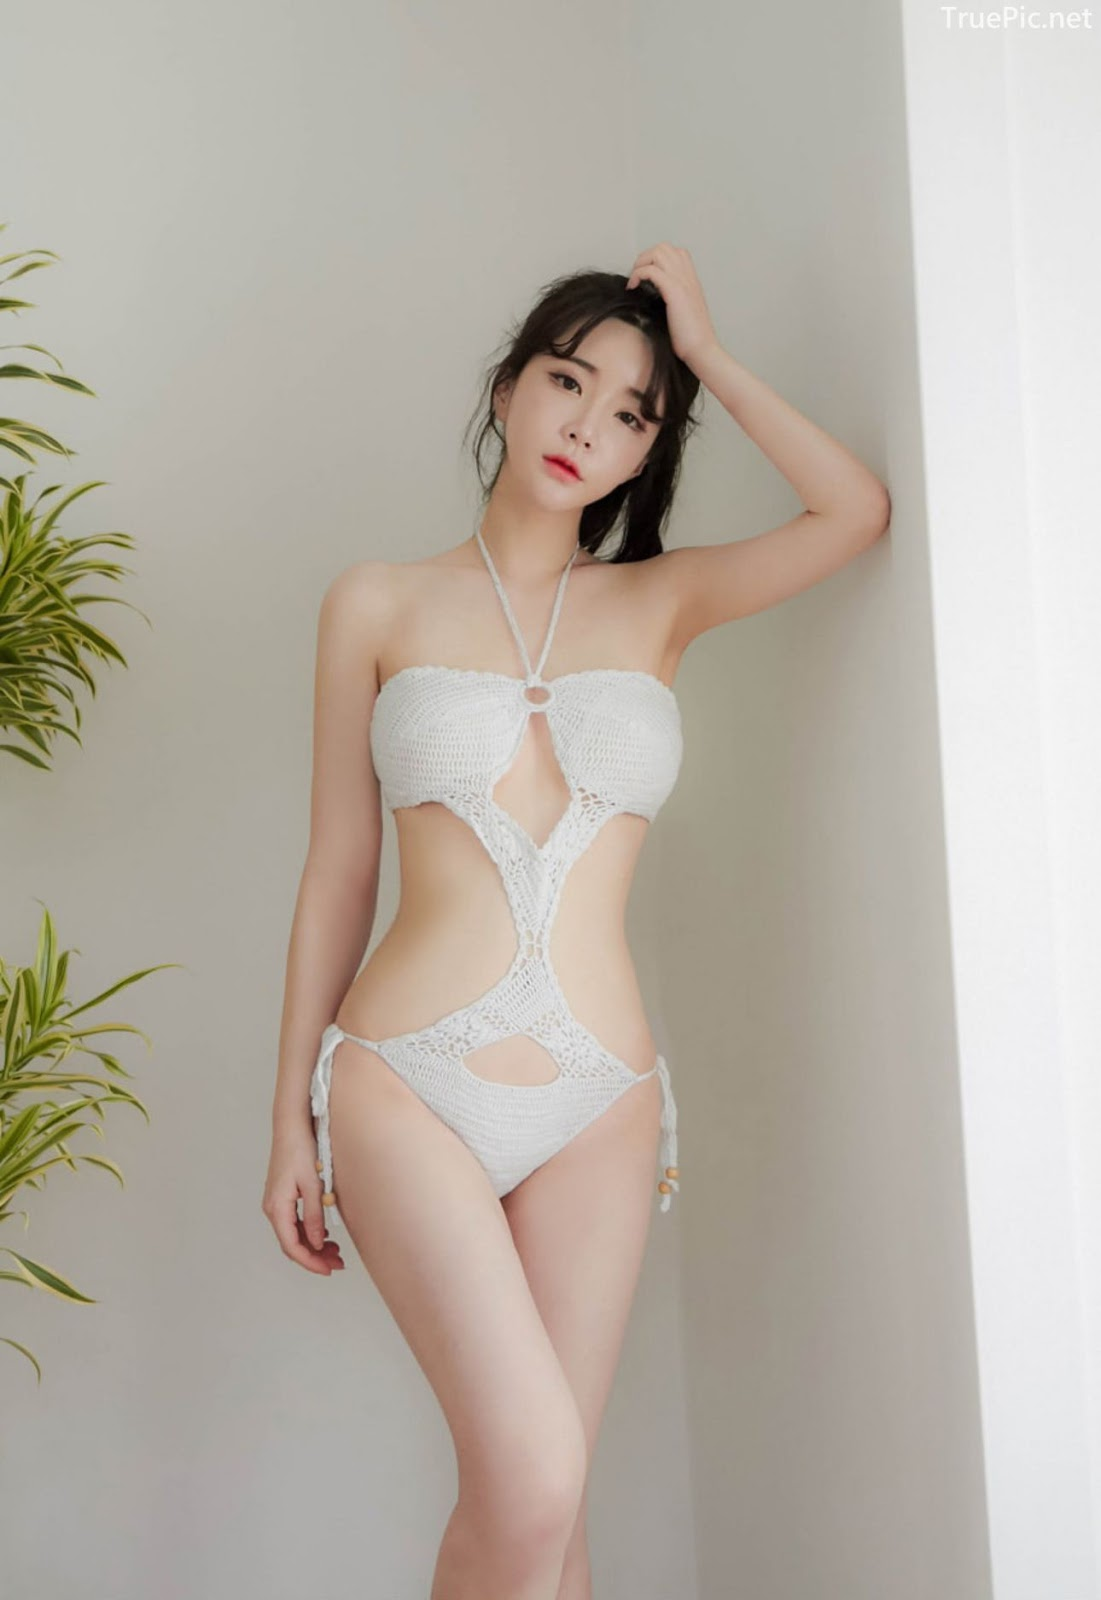 Yoo Gyeong - White vs Black swimsuit - Korean model and fashion - Picture 3